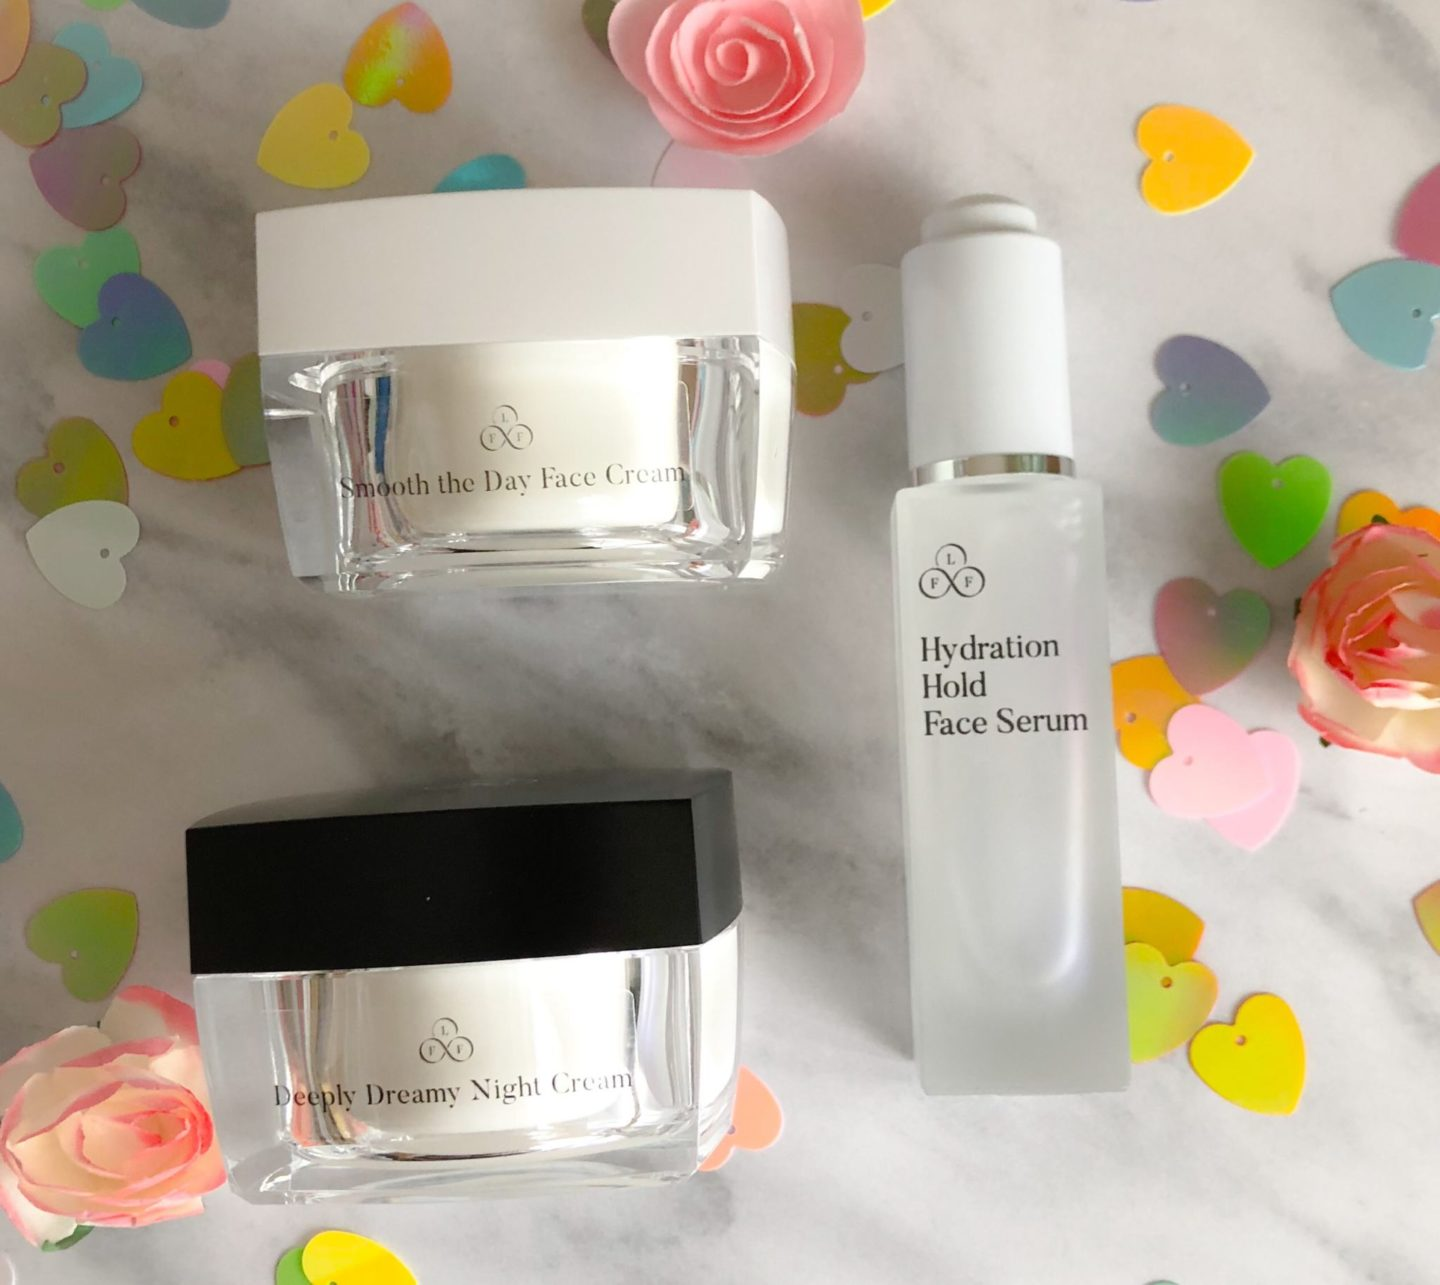 Look Fabulous Forever's Skincare Range for Mature Skin.